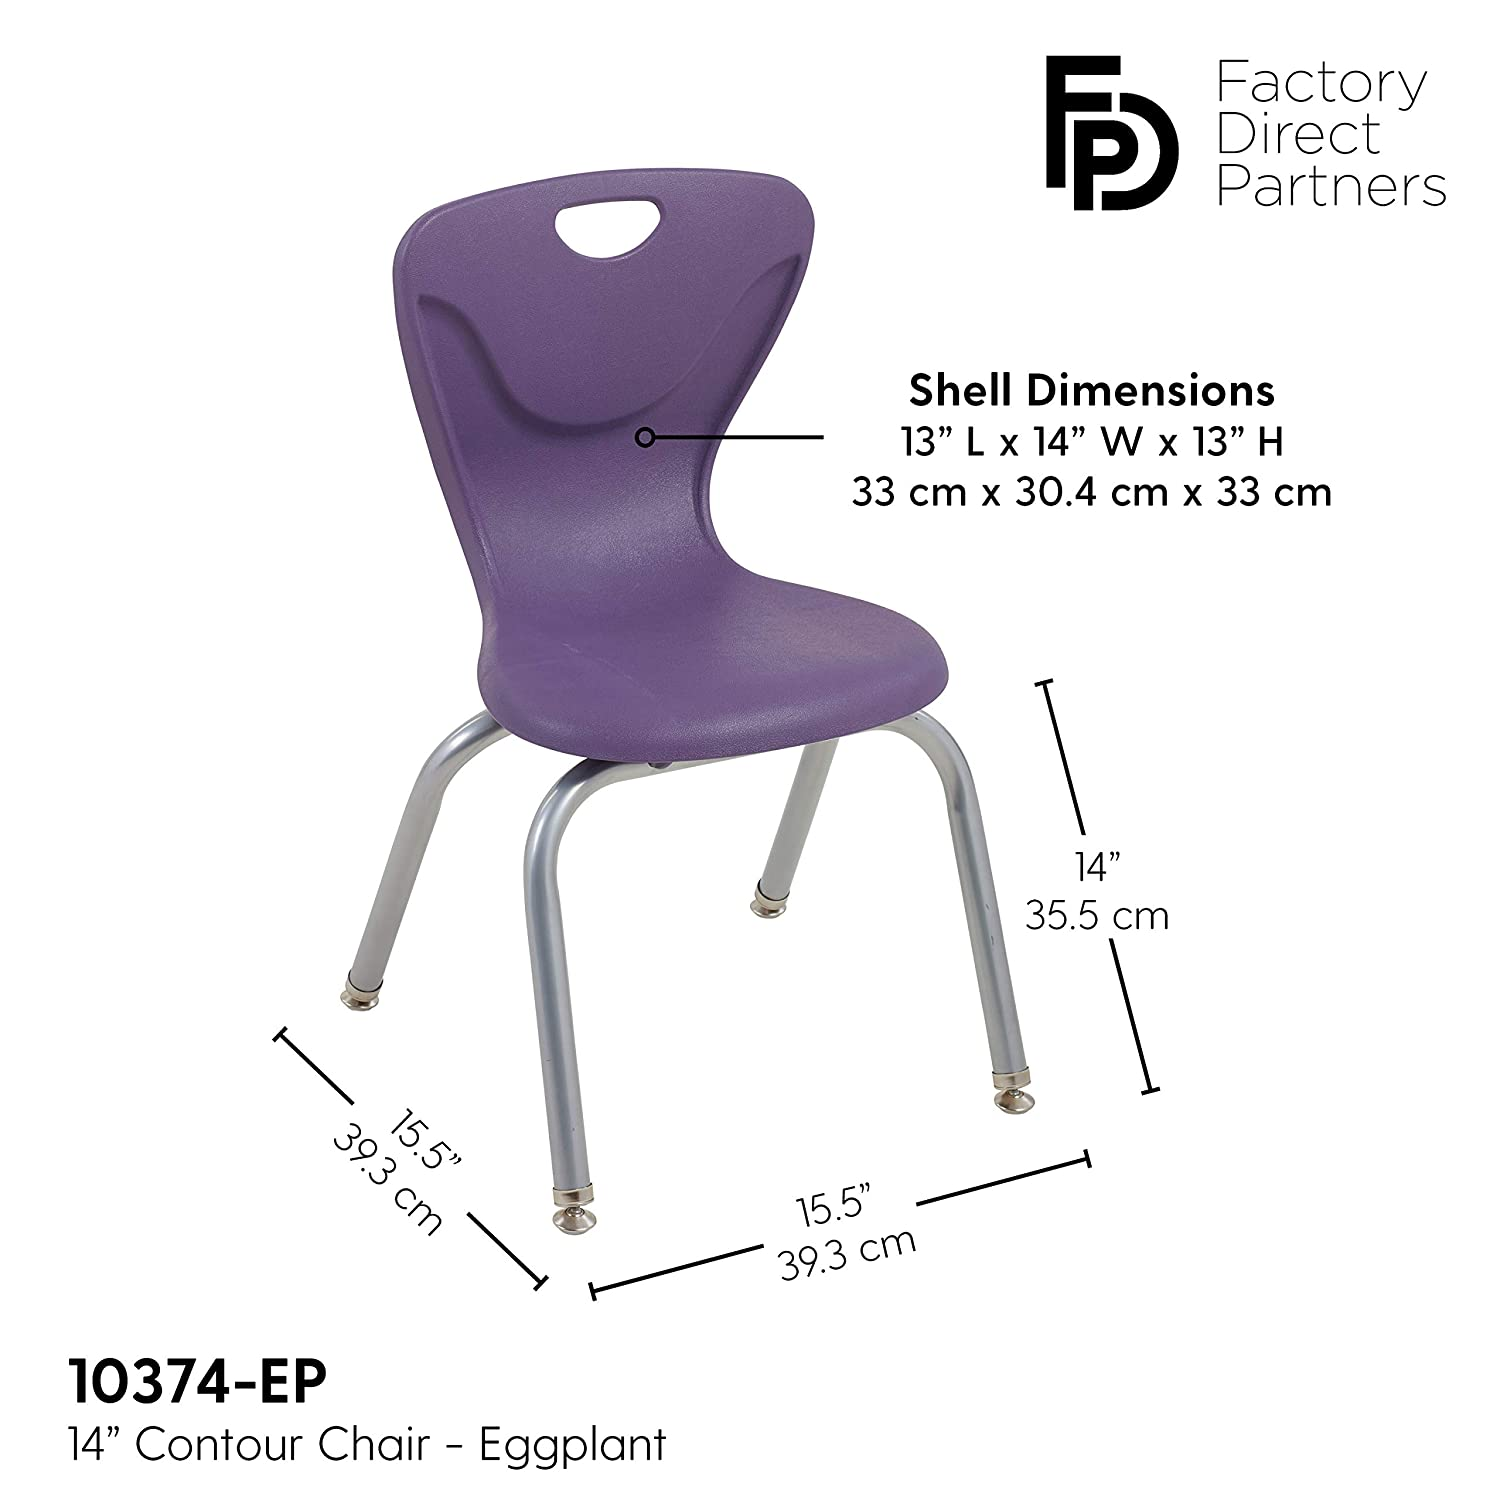 Blue Ergonomic Molded Seat Shell with Chromed Steel Frame and Swivel Leg Glides 16 Contour School Stacking Student Chair 4-Pack